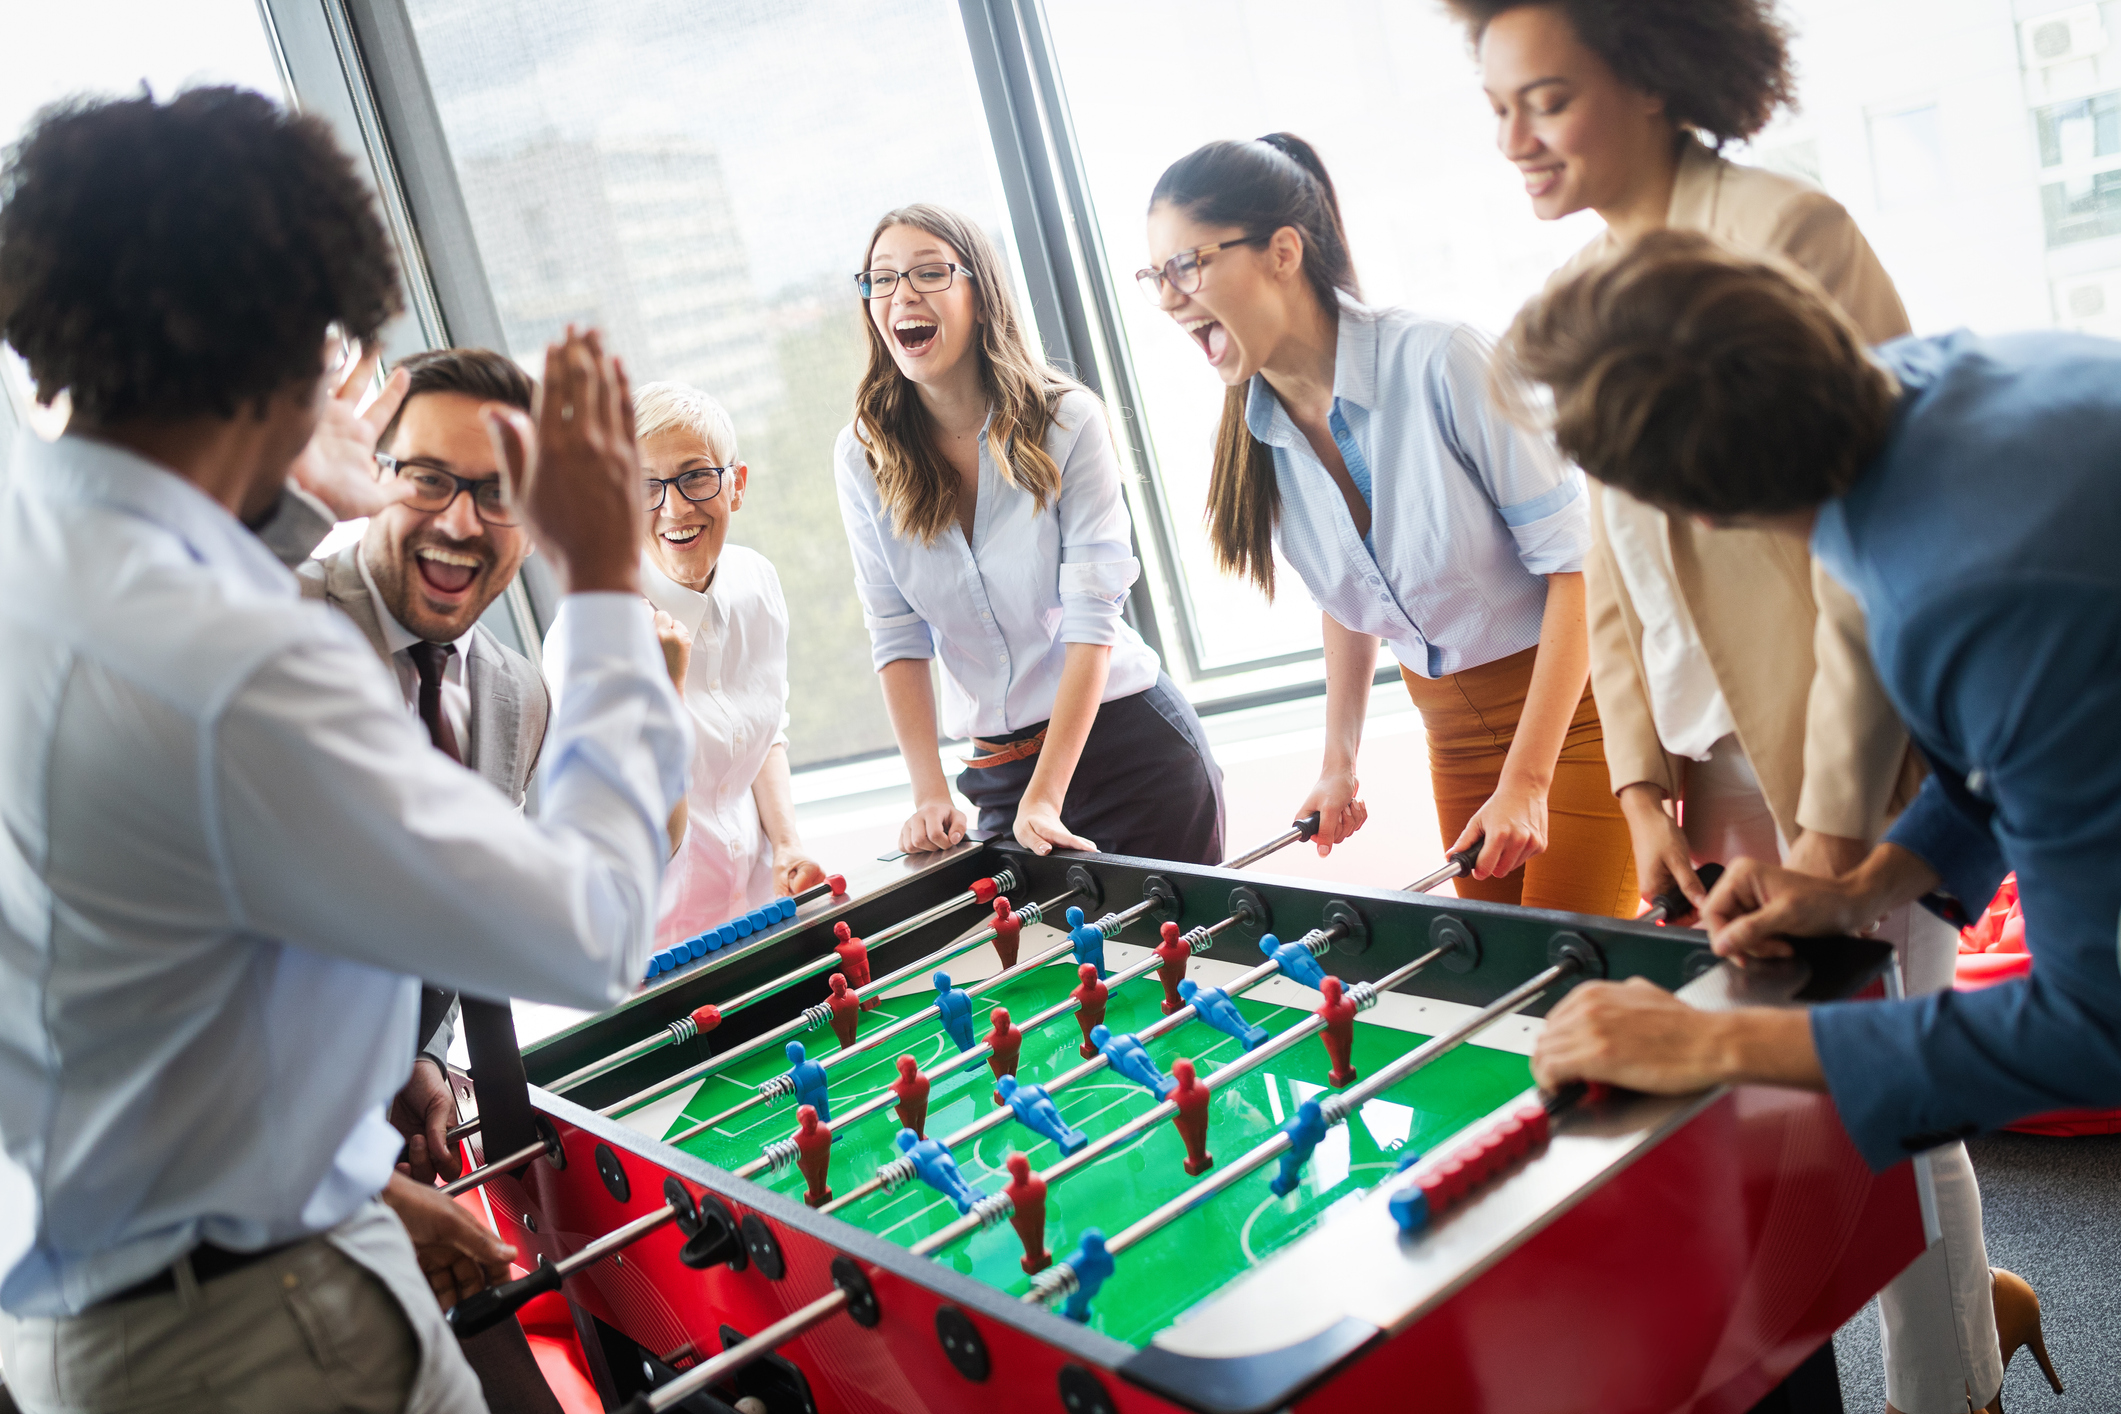 7 Onboarding Icebreakers for New Hires to Integrate and Build Connections